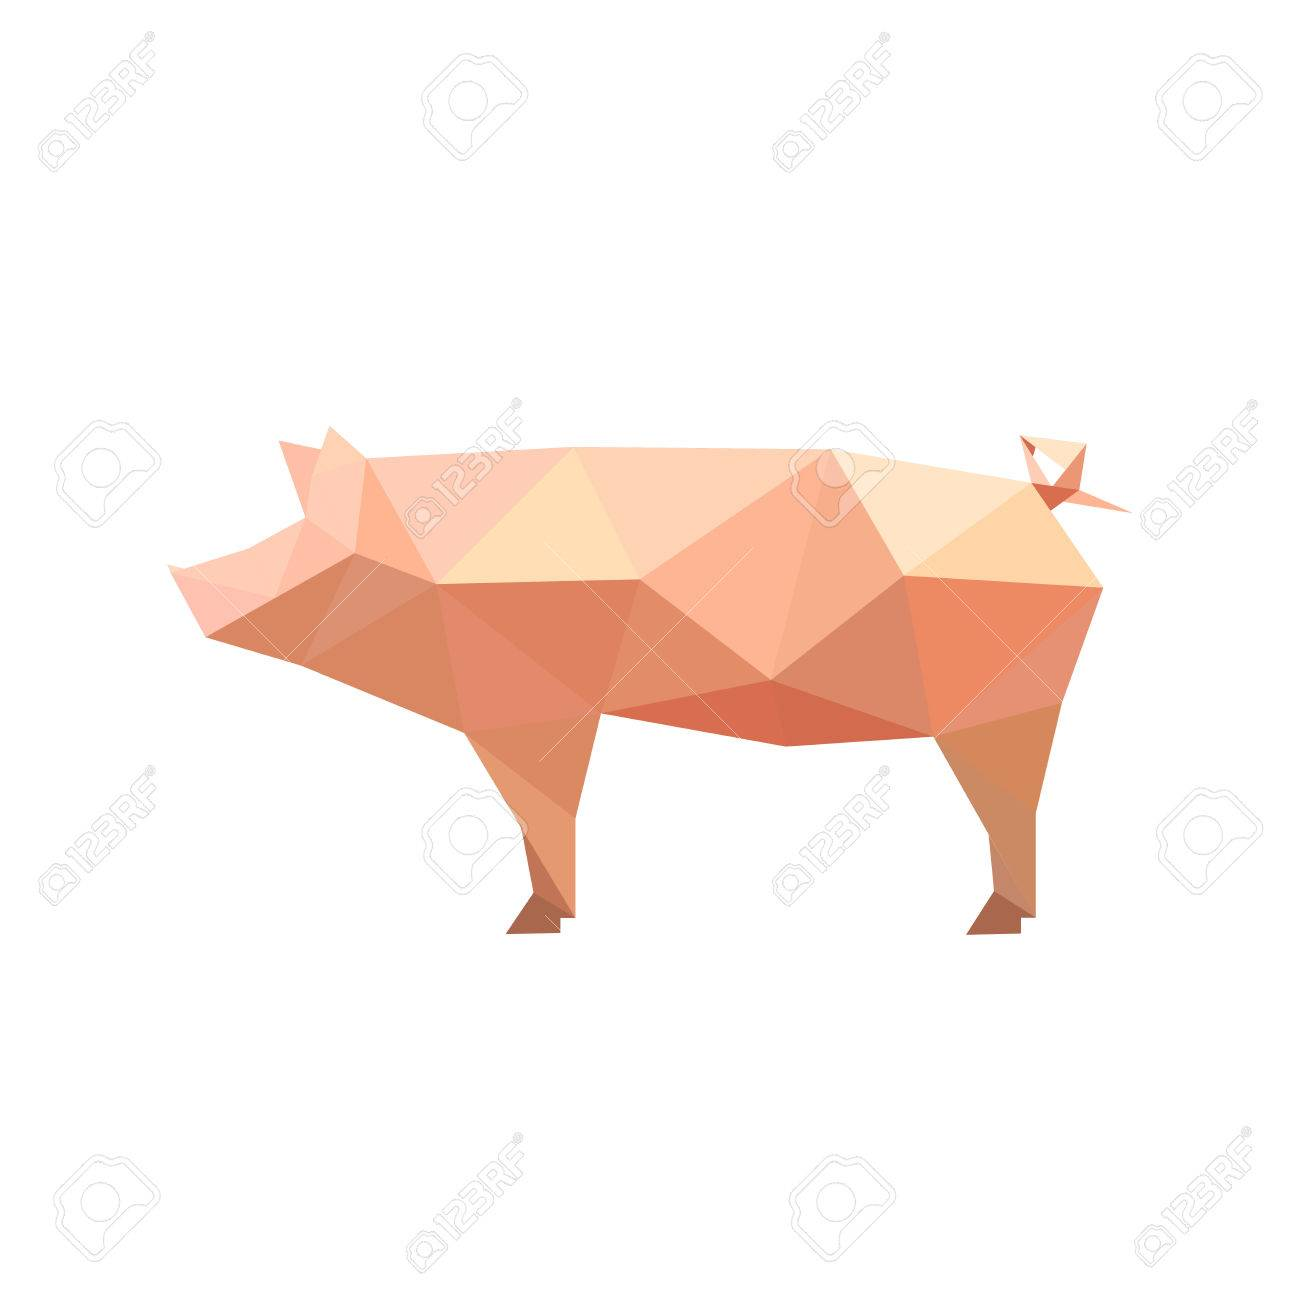 151 origami pig cliparts stock vector and royalty free origami illustration of origami pig isolated on white background illustration pooptronica